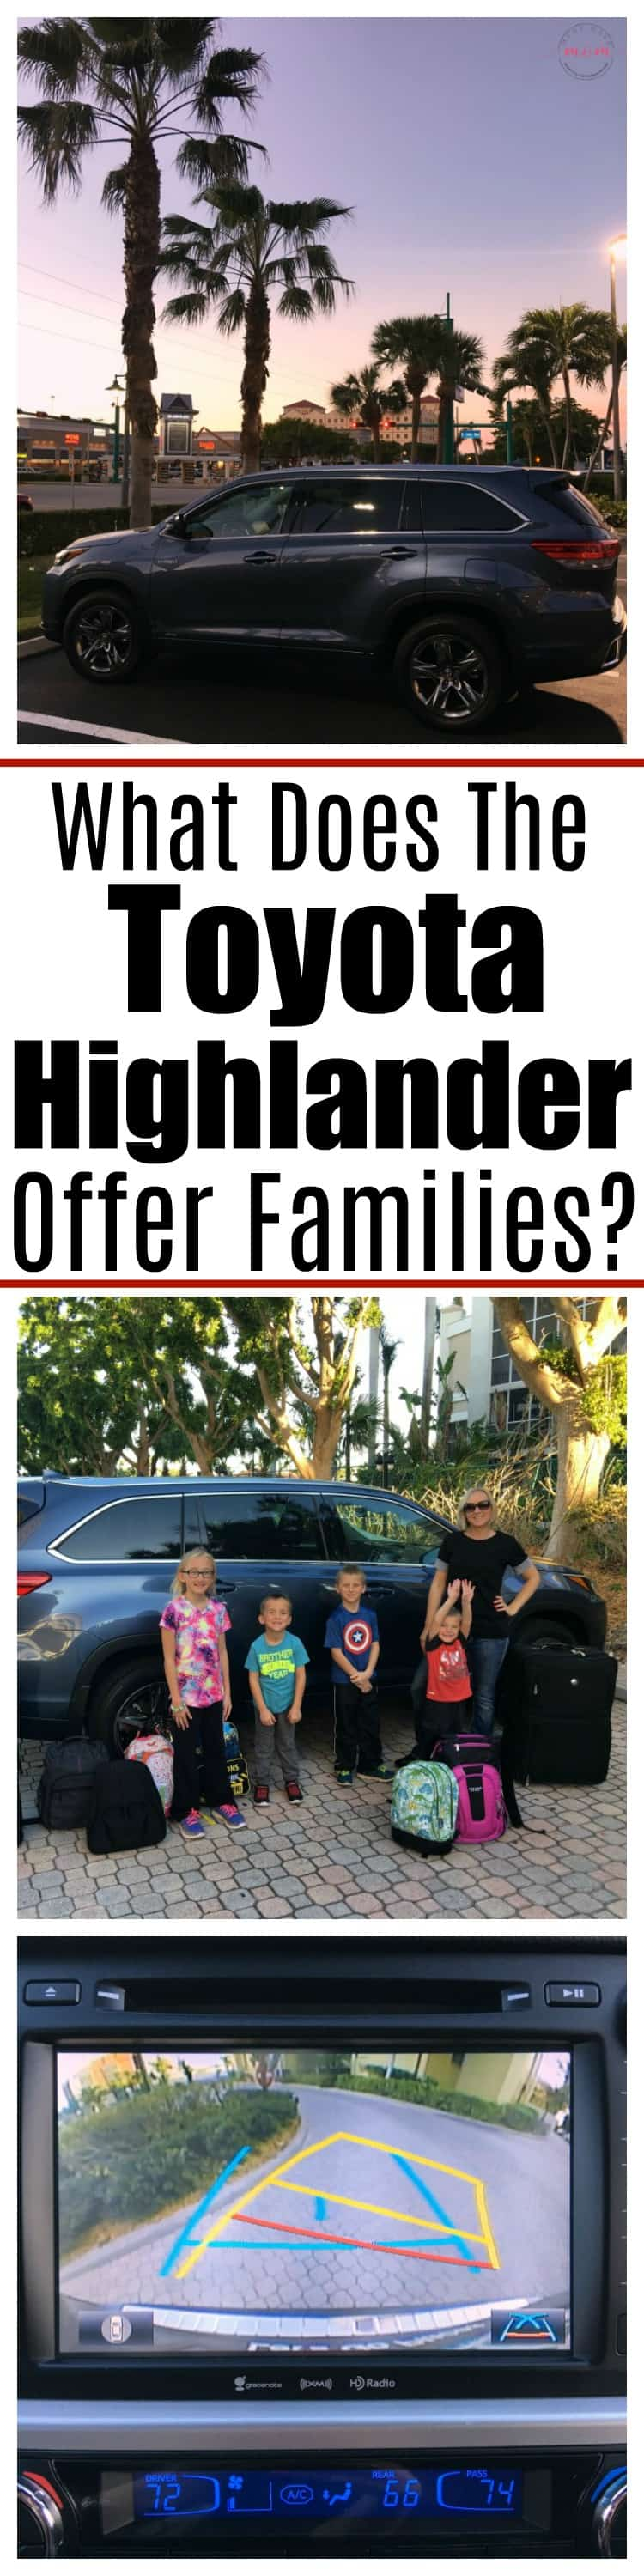 Favorite features of the Toyota Highlander SUV for families